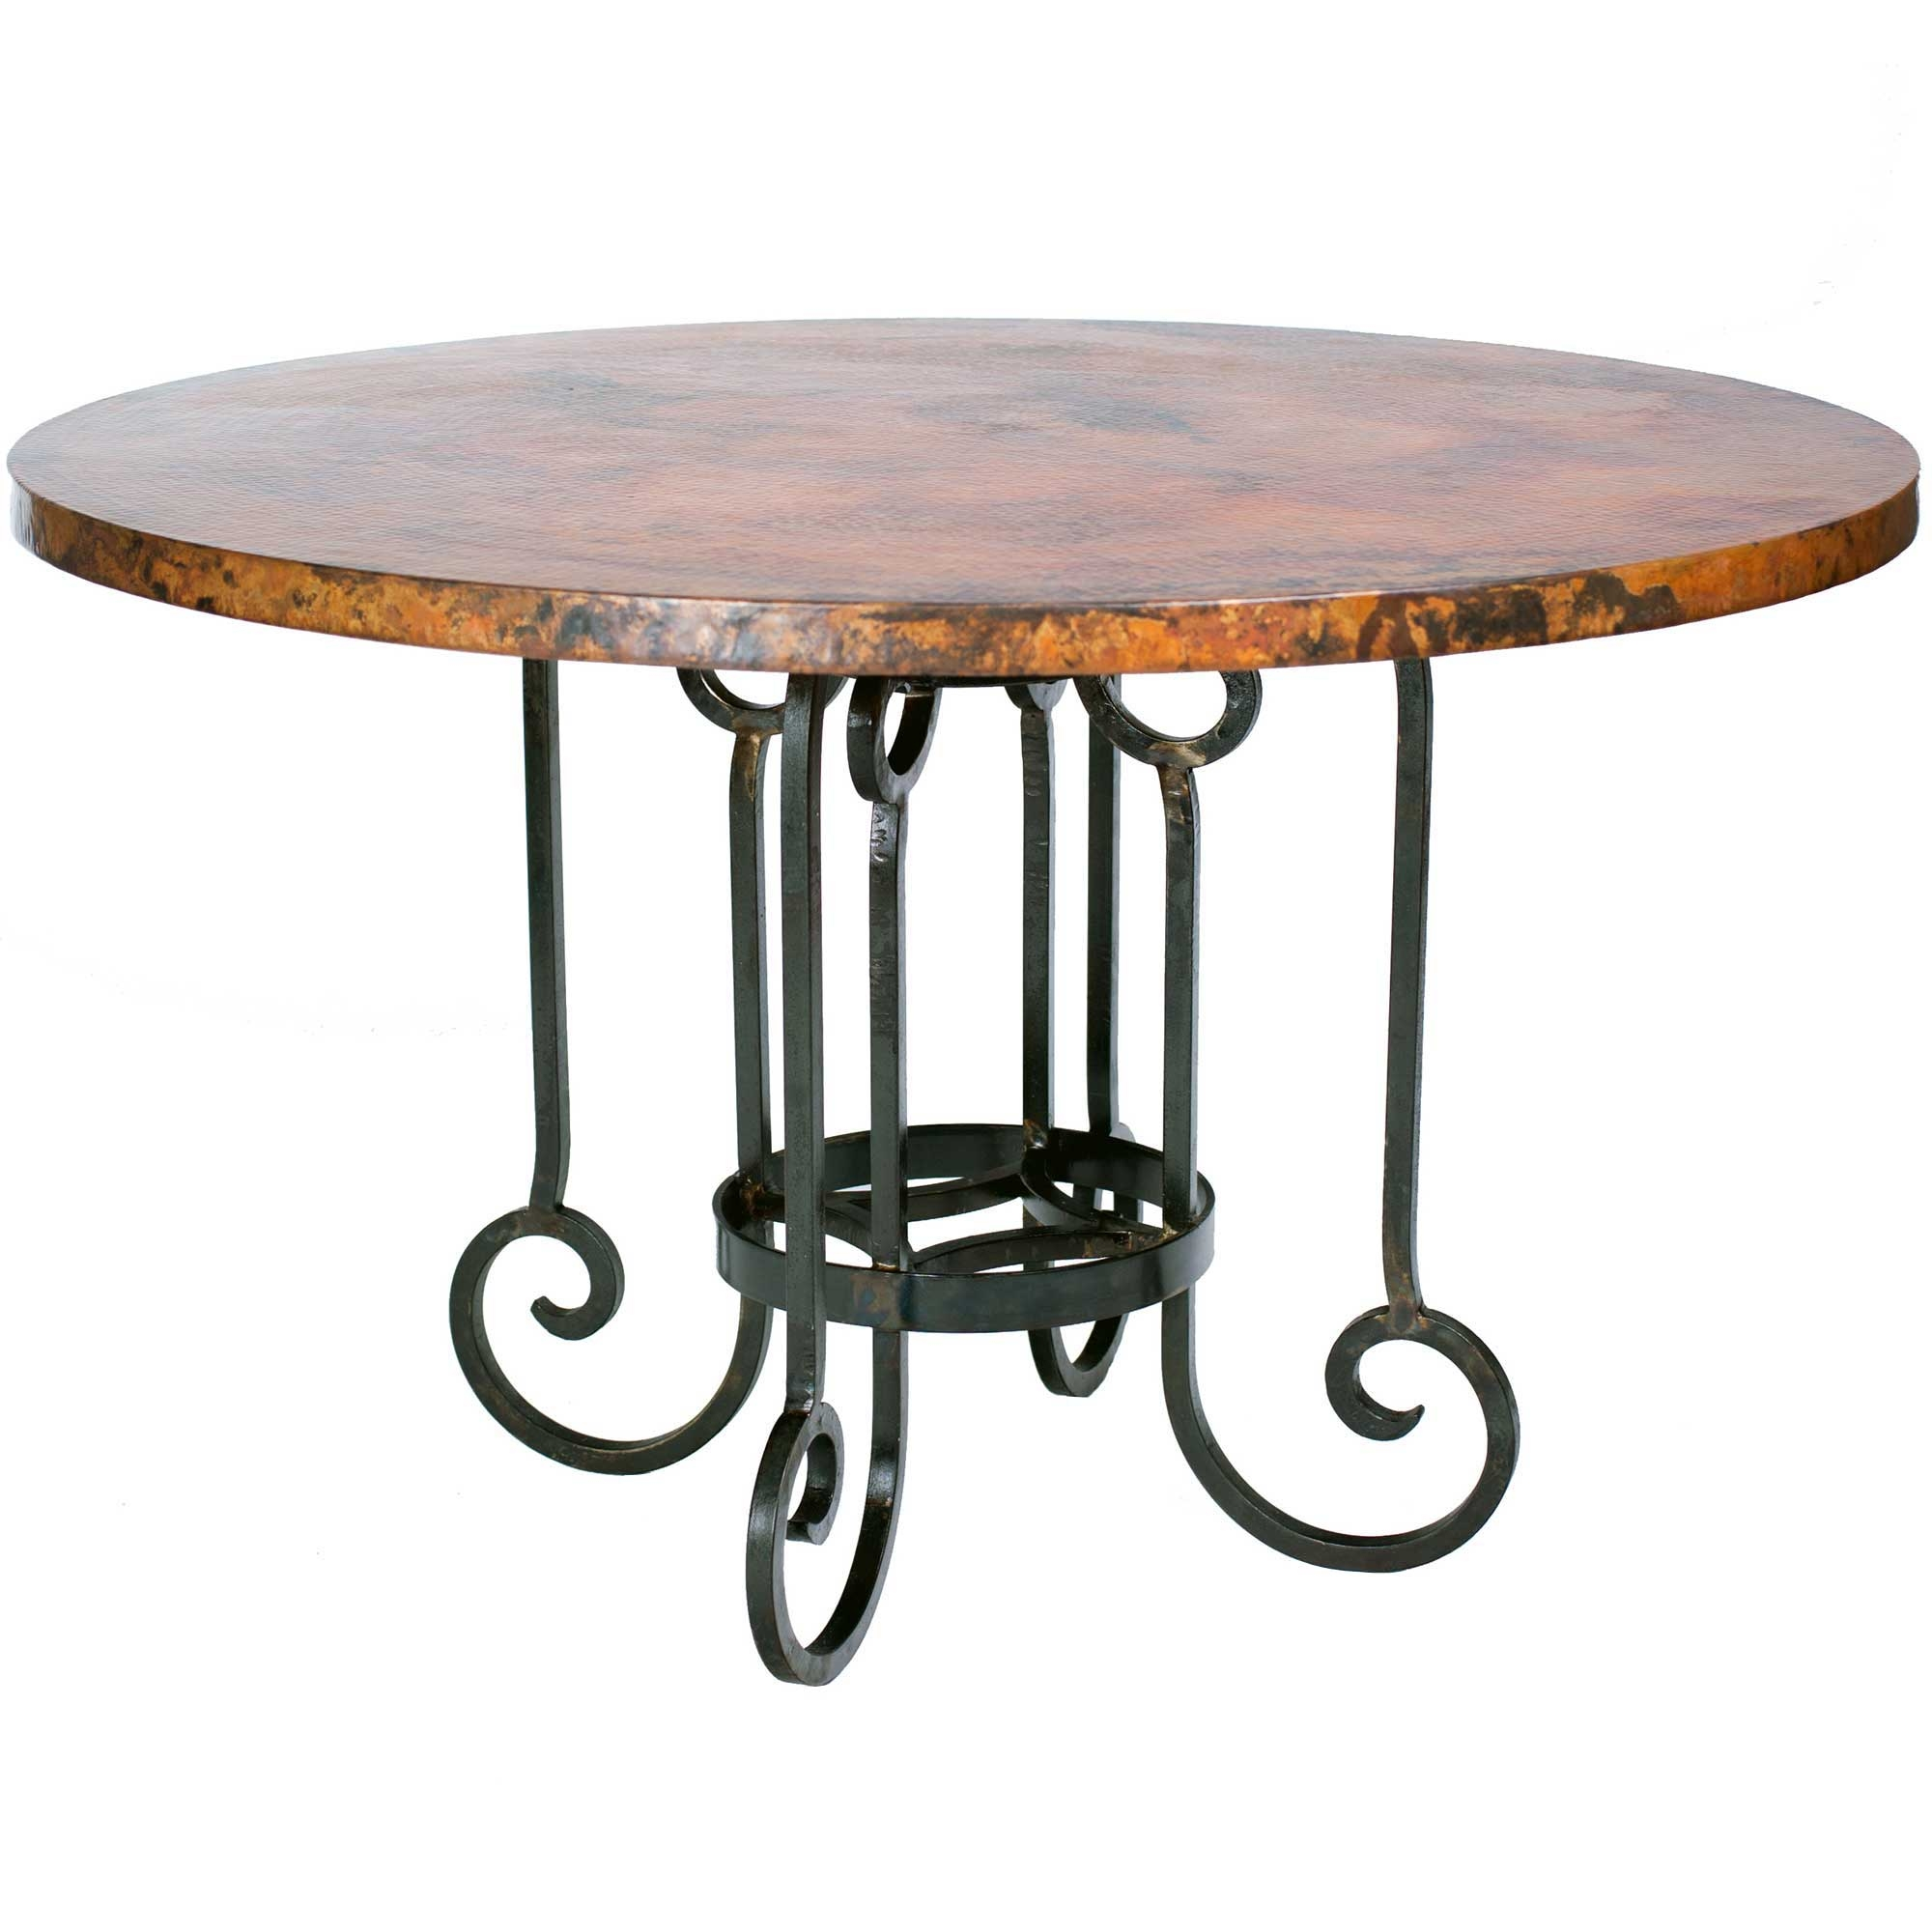 Curled Leg Iron Dining Table With 48 In